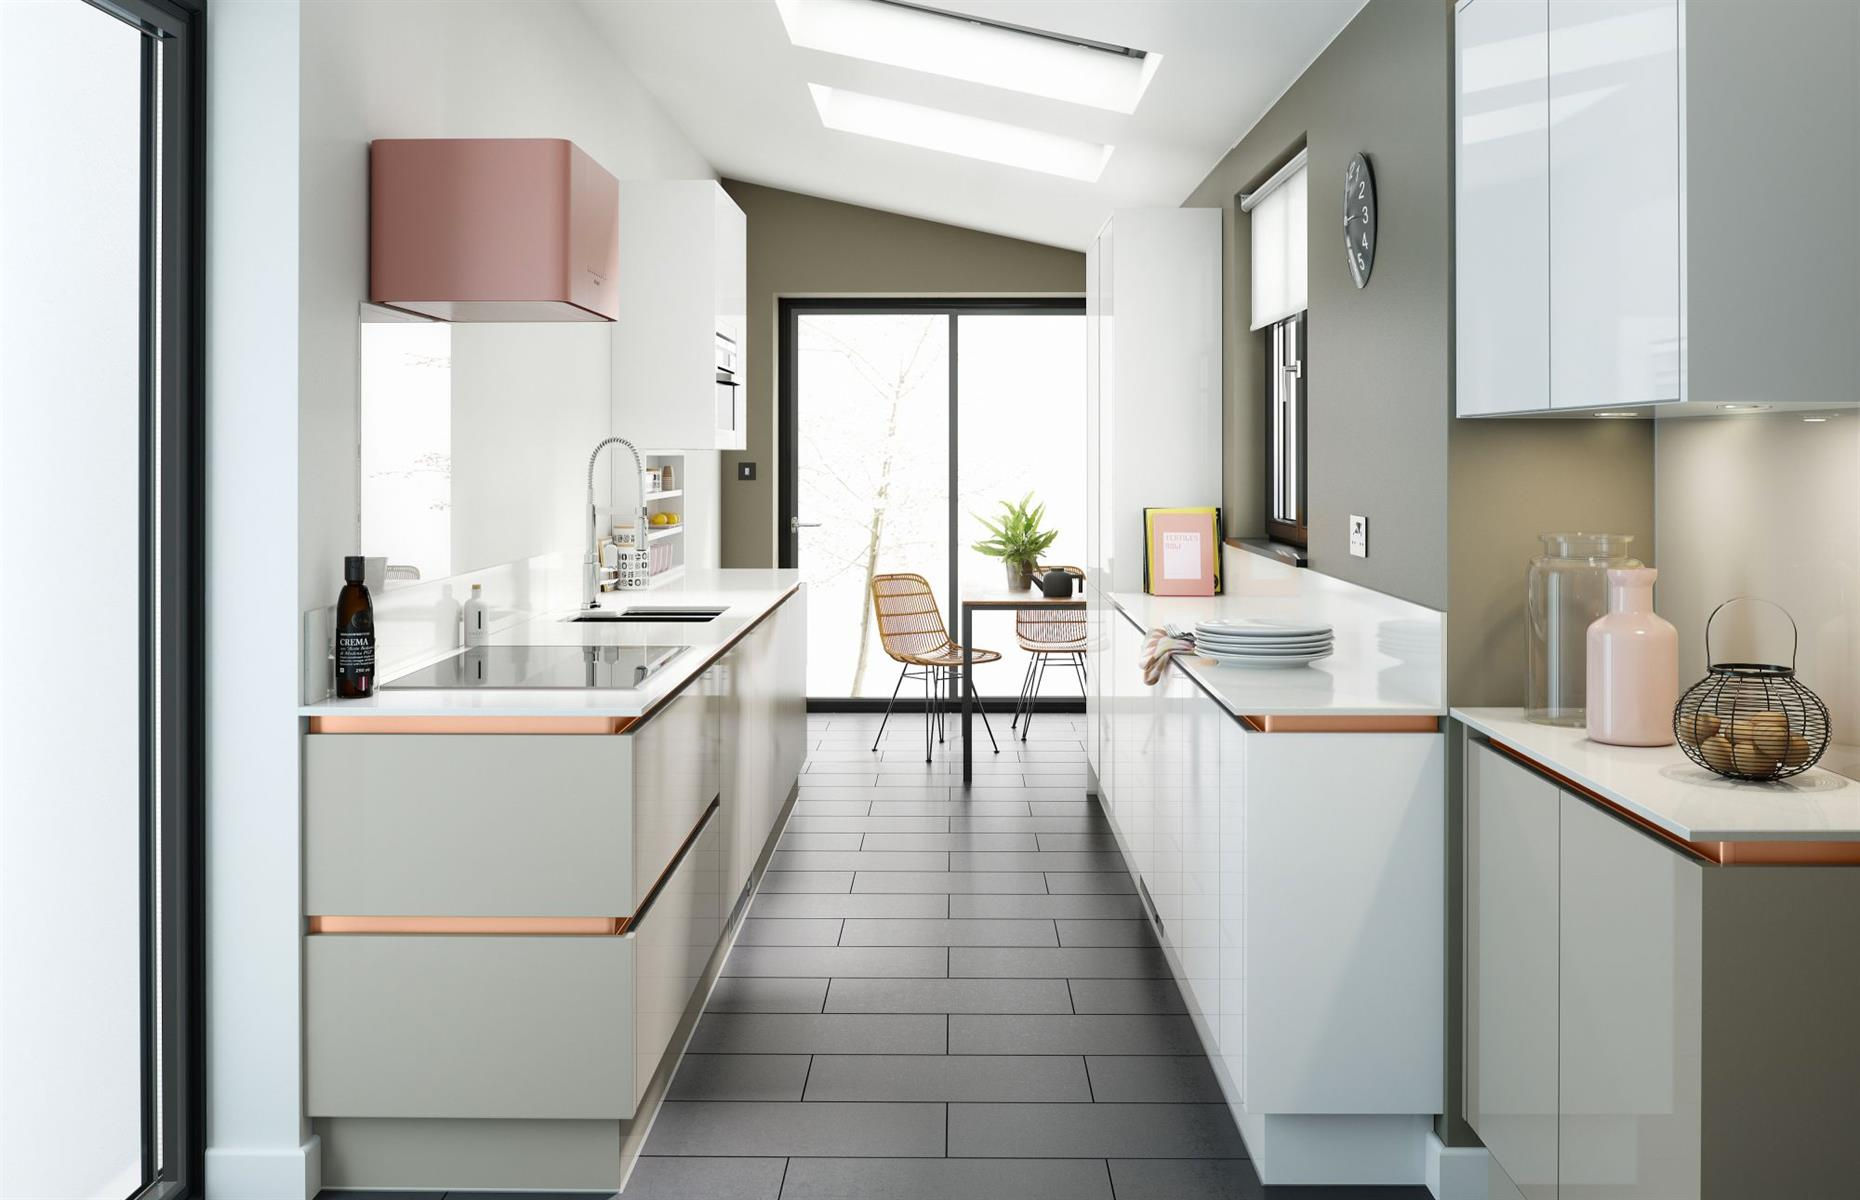 Beautiful ideas for kitchen extensions | loveproperty.com